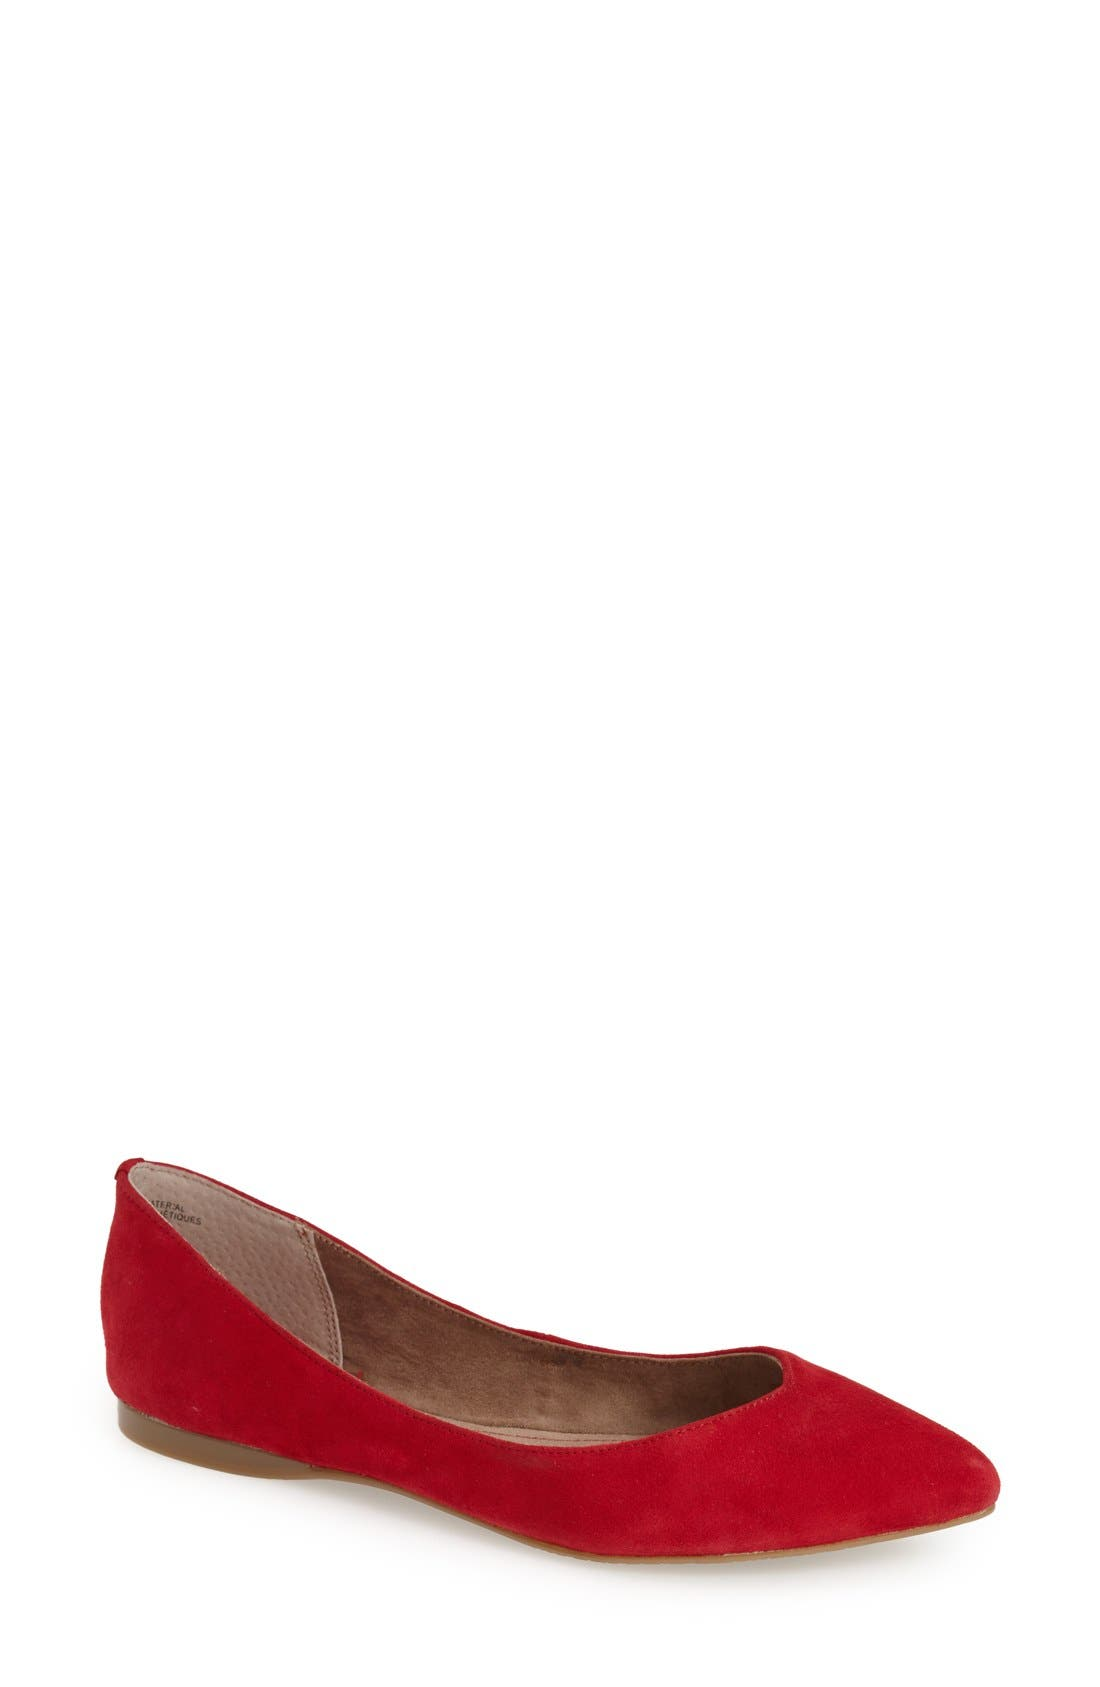 Alternate Image 1 Selected - BP. 'Moveover' Pointy Toe Leather Flat (Women)